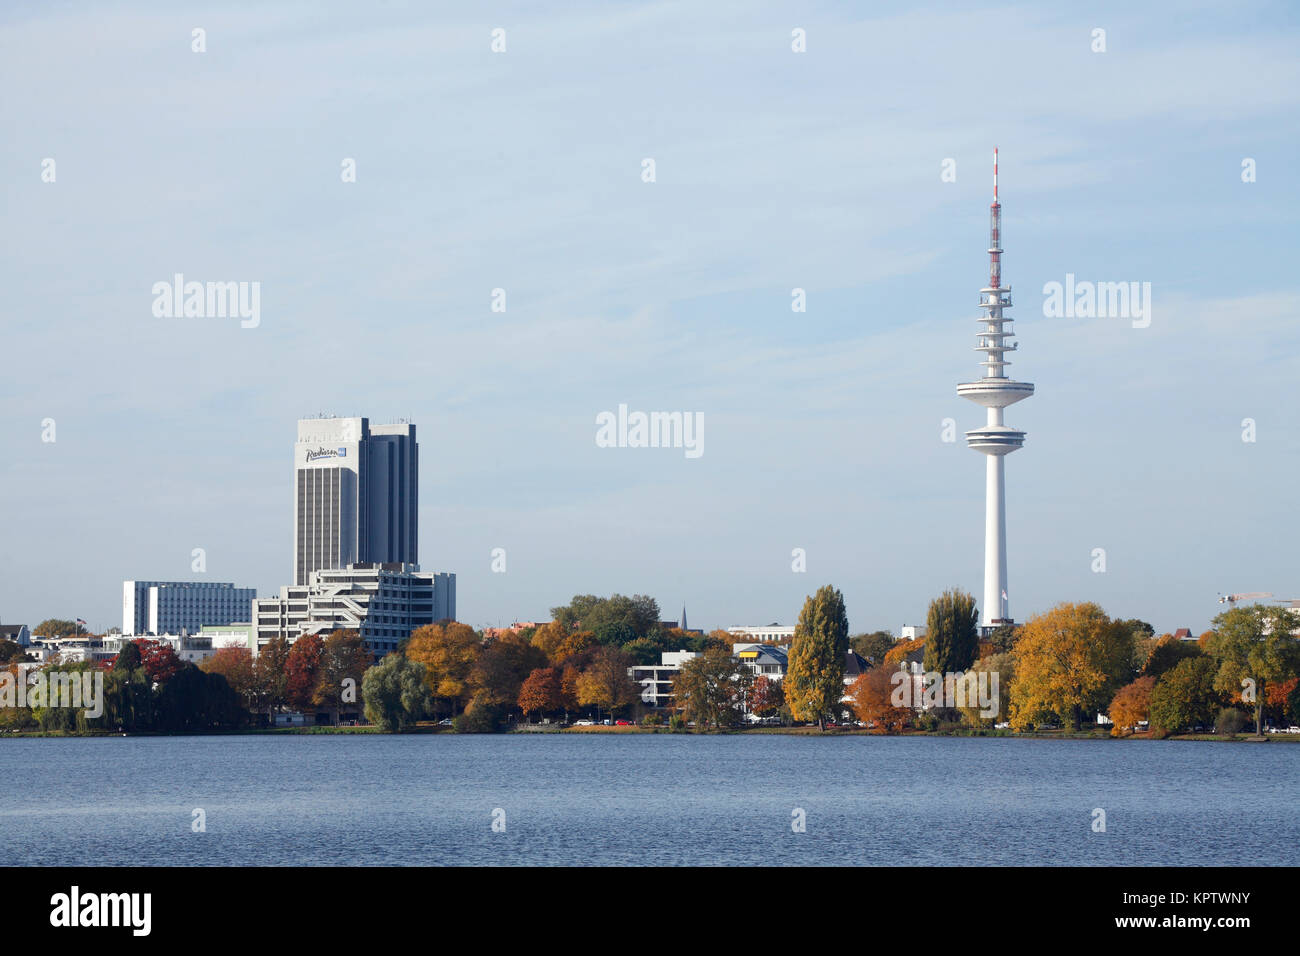 Radisson Blu Hotel and TV tower, at the Außenalster in autumn, Hamburg, Germany - Stock Image